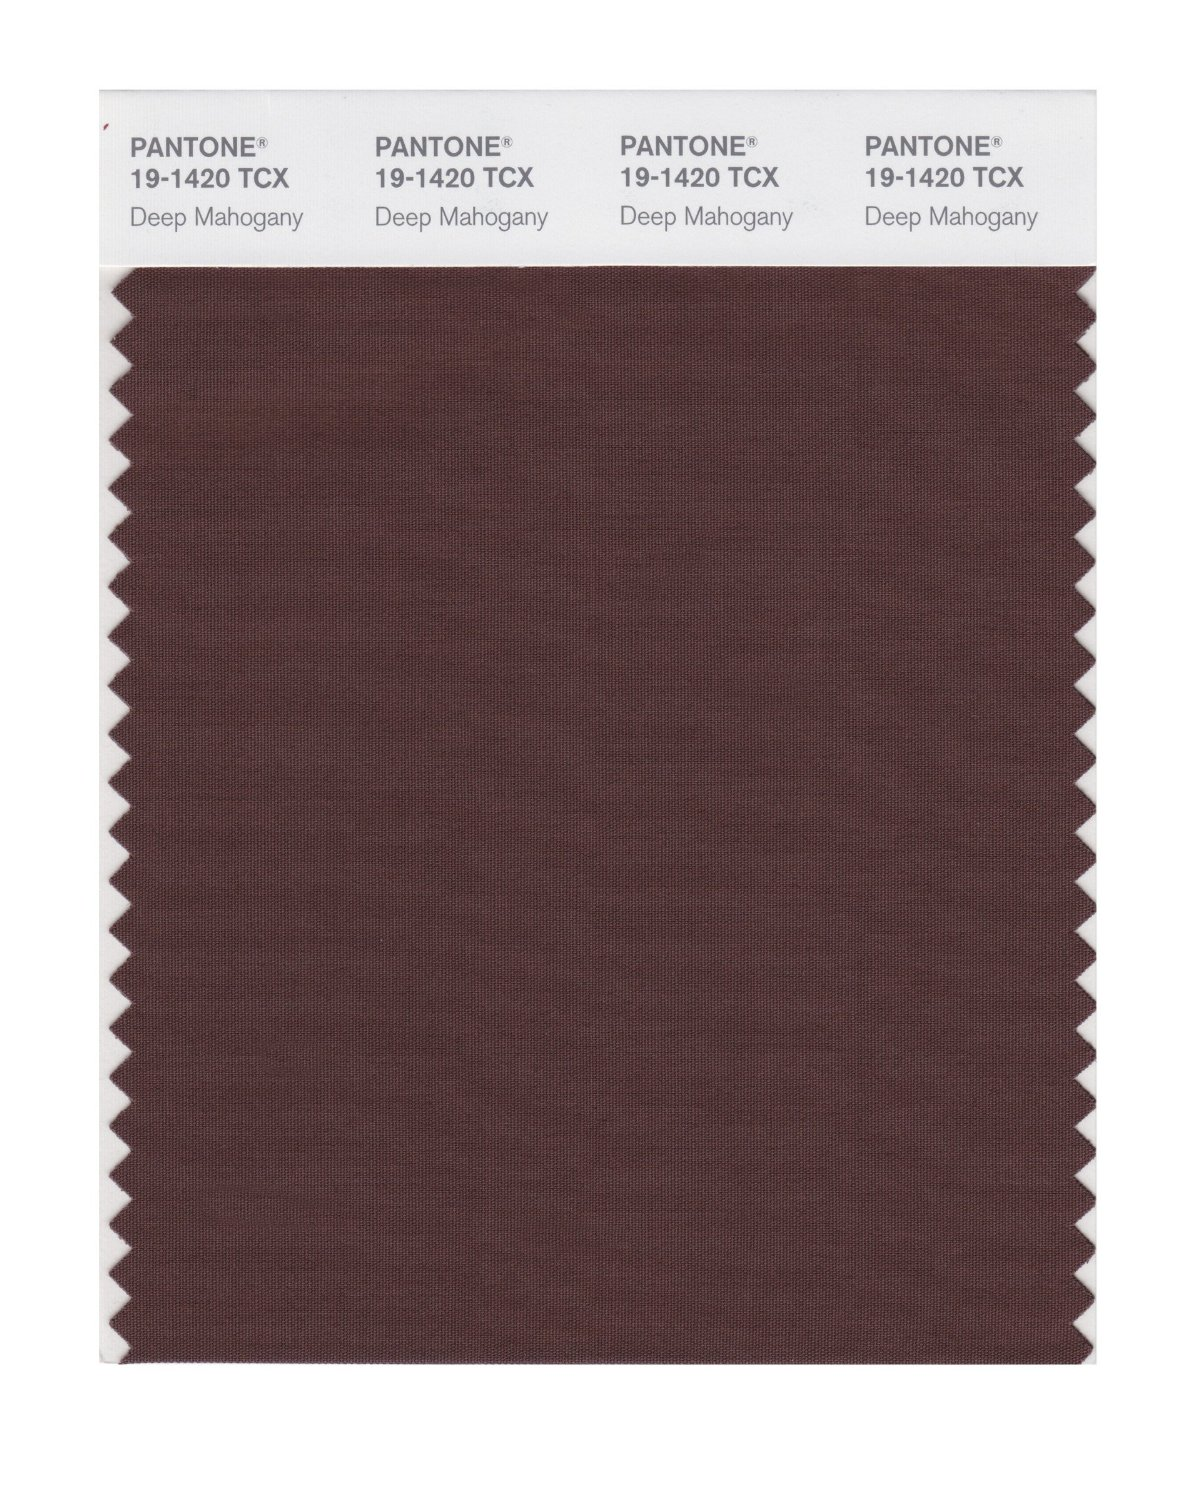 Pantone Smart Swatch 19-1420 Deep Mahogany